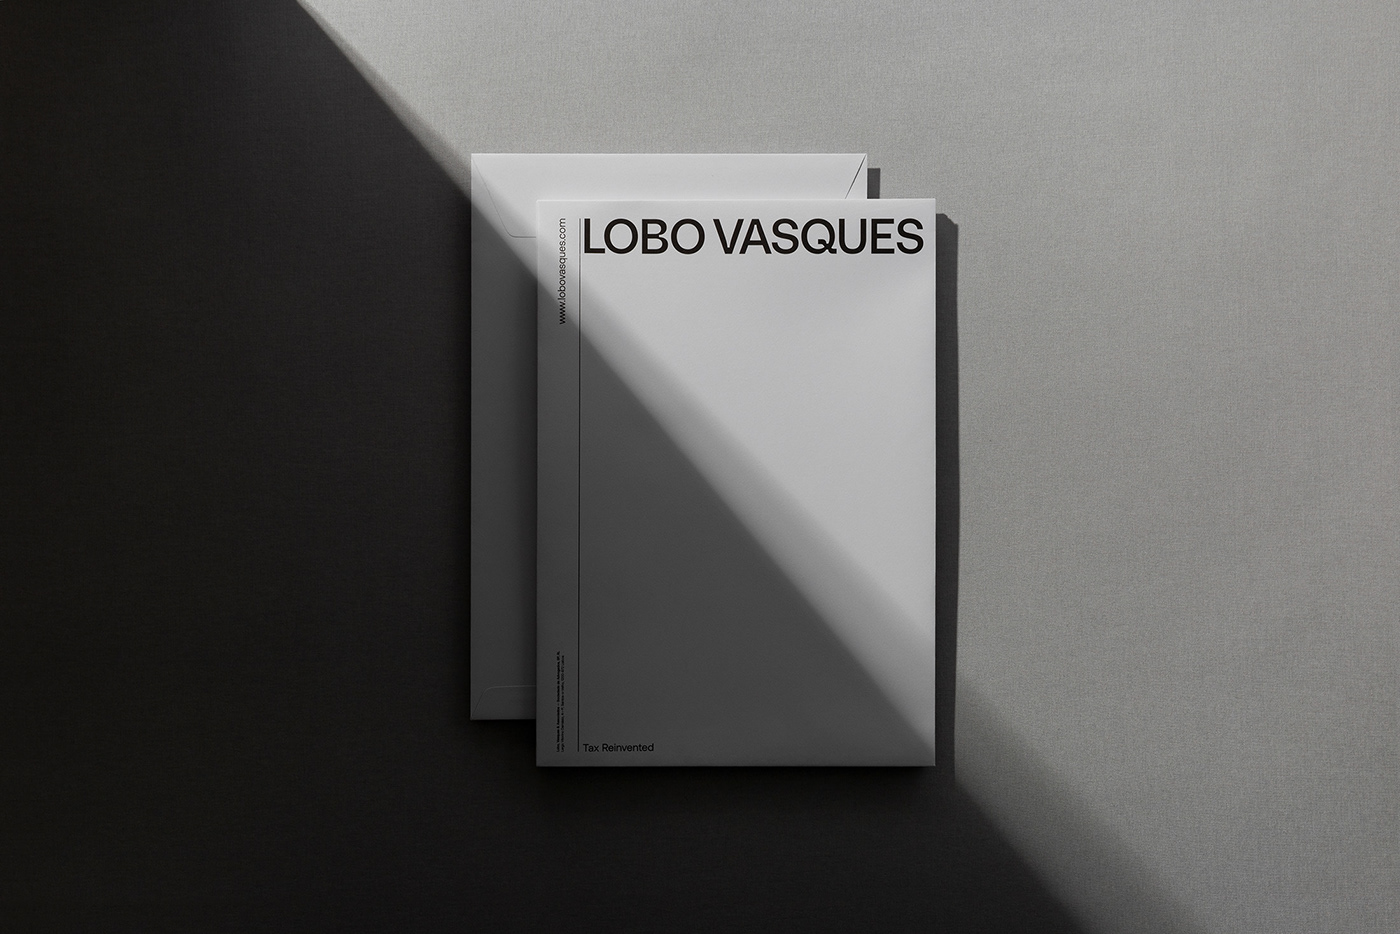 branding  corporate lawyer legal company lobo vasques Office stationary visual